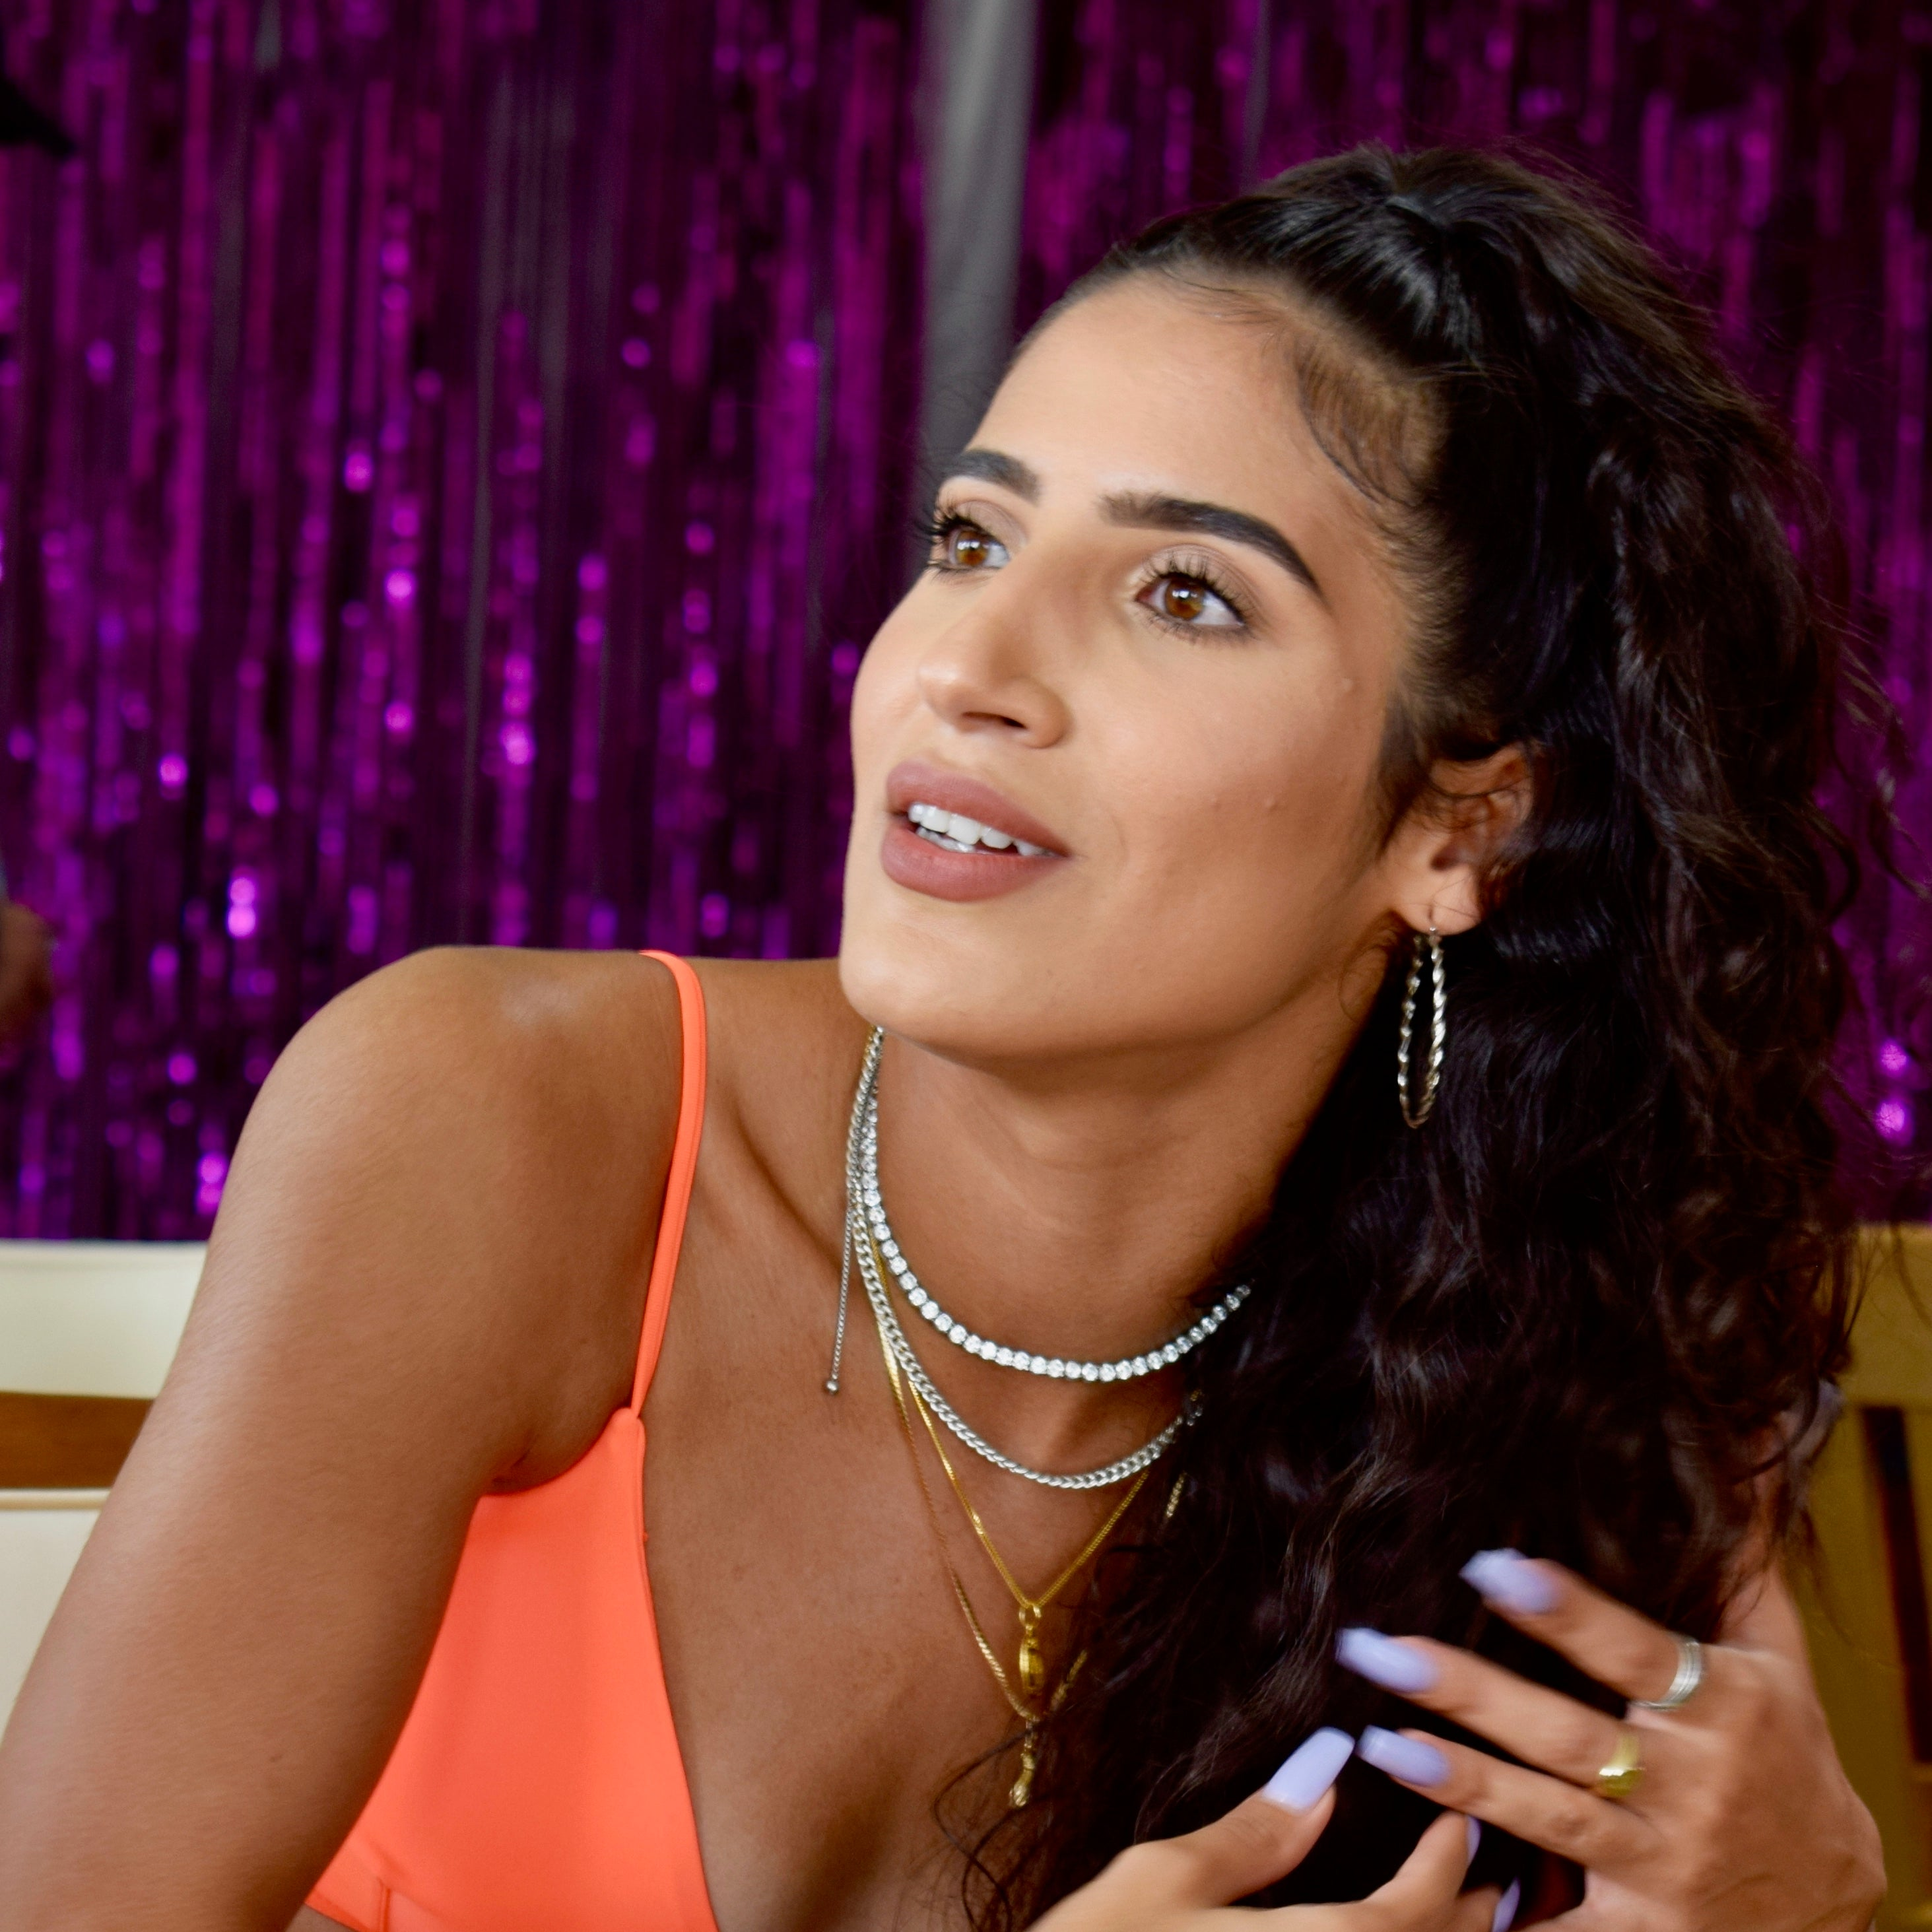 onblast-edm-blog/abir-proves-to-have-her-finest-hour-in-iedm-interview